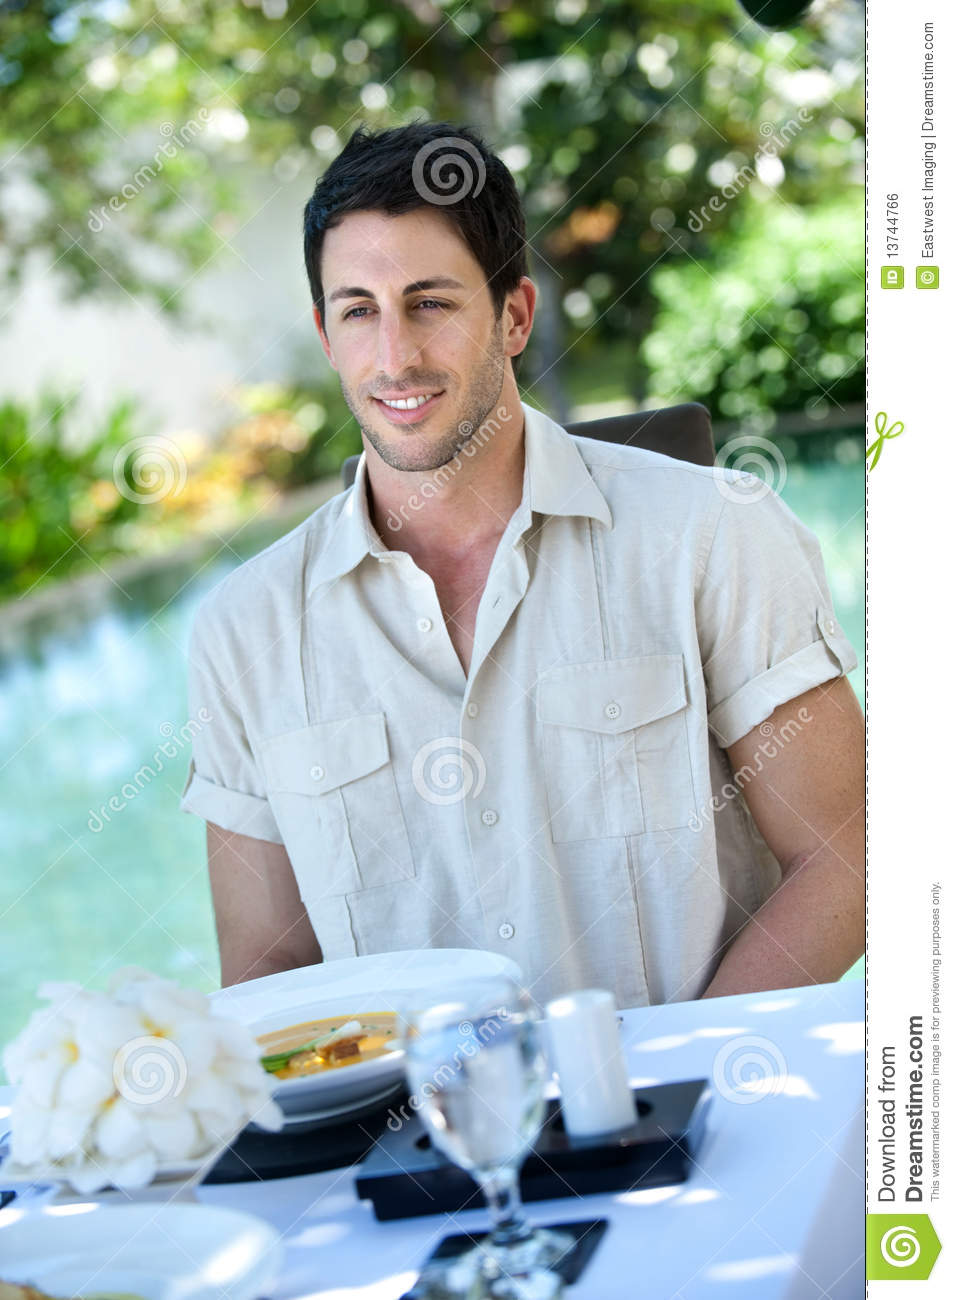 Outdoor meal royalty free stock image image 13744766 for Meal outdoors